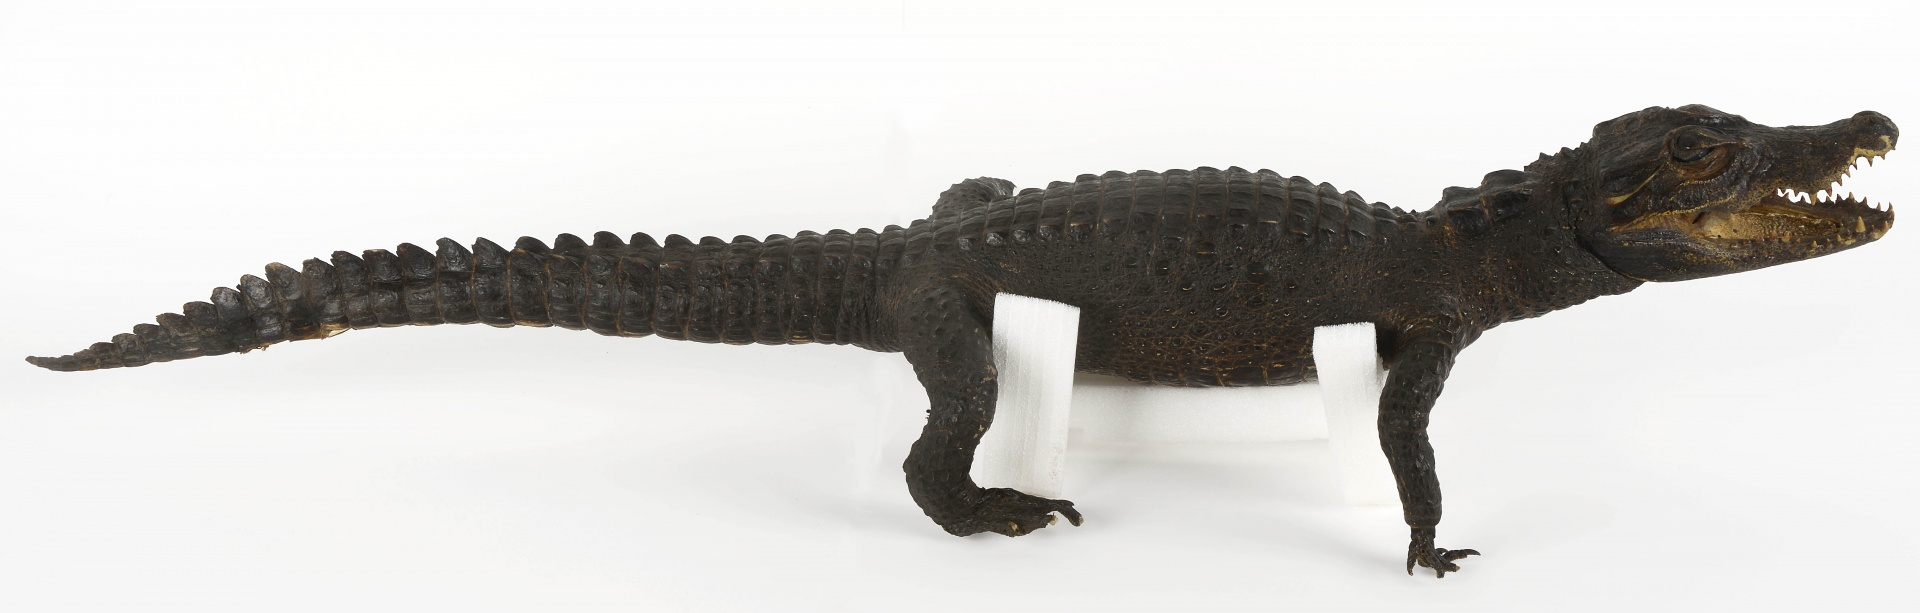 fig 15. When the reptile was stuffed, its skin was removed in one piece. Wood-shavings had been used for stuffing and the tough scaled skin had been lacquered.